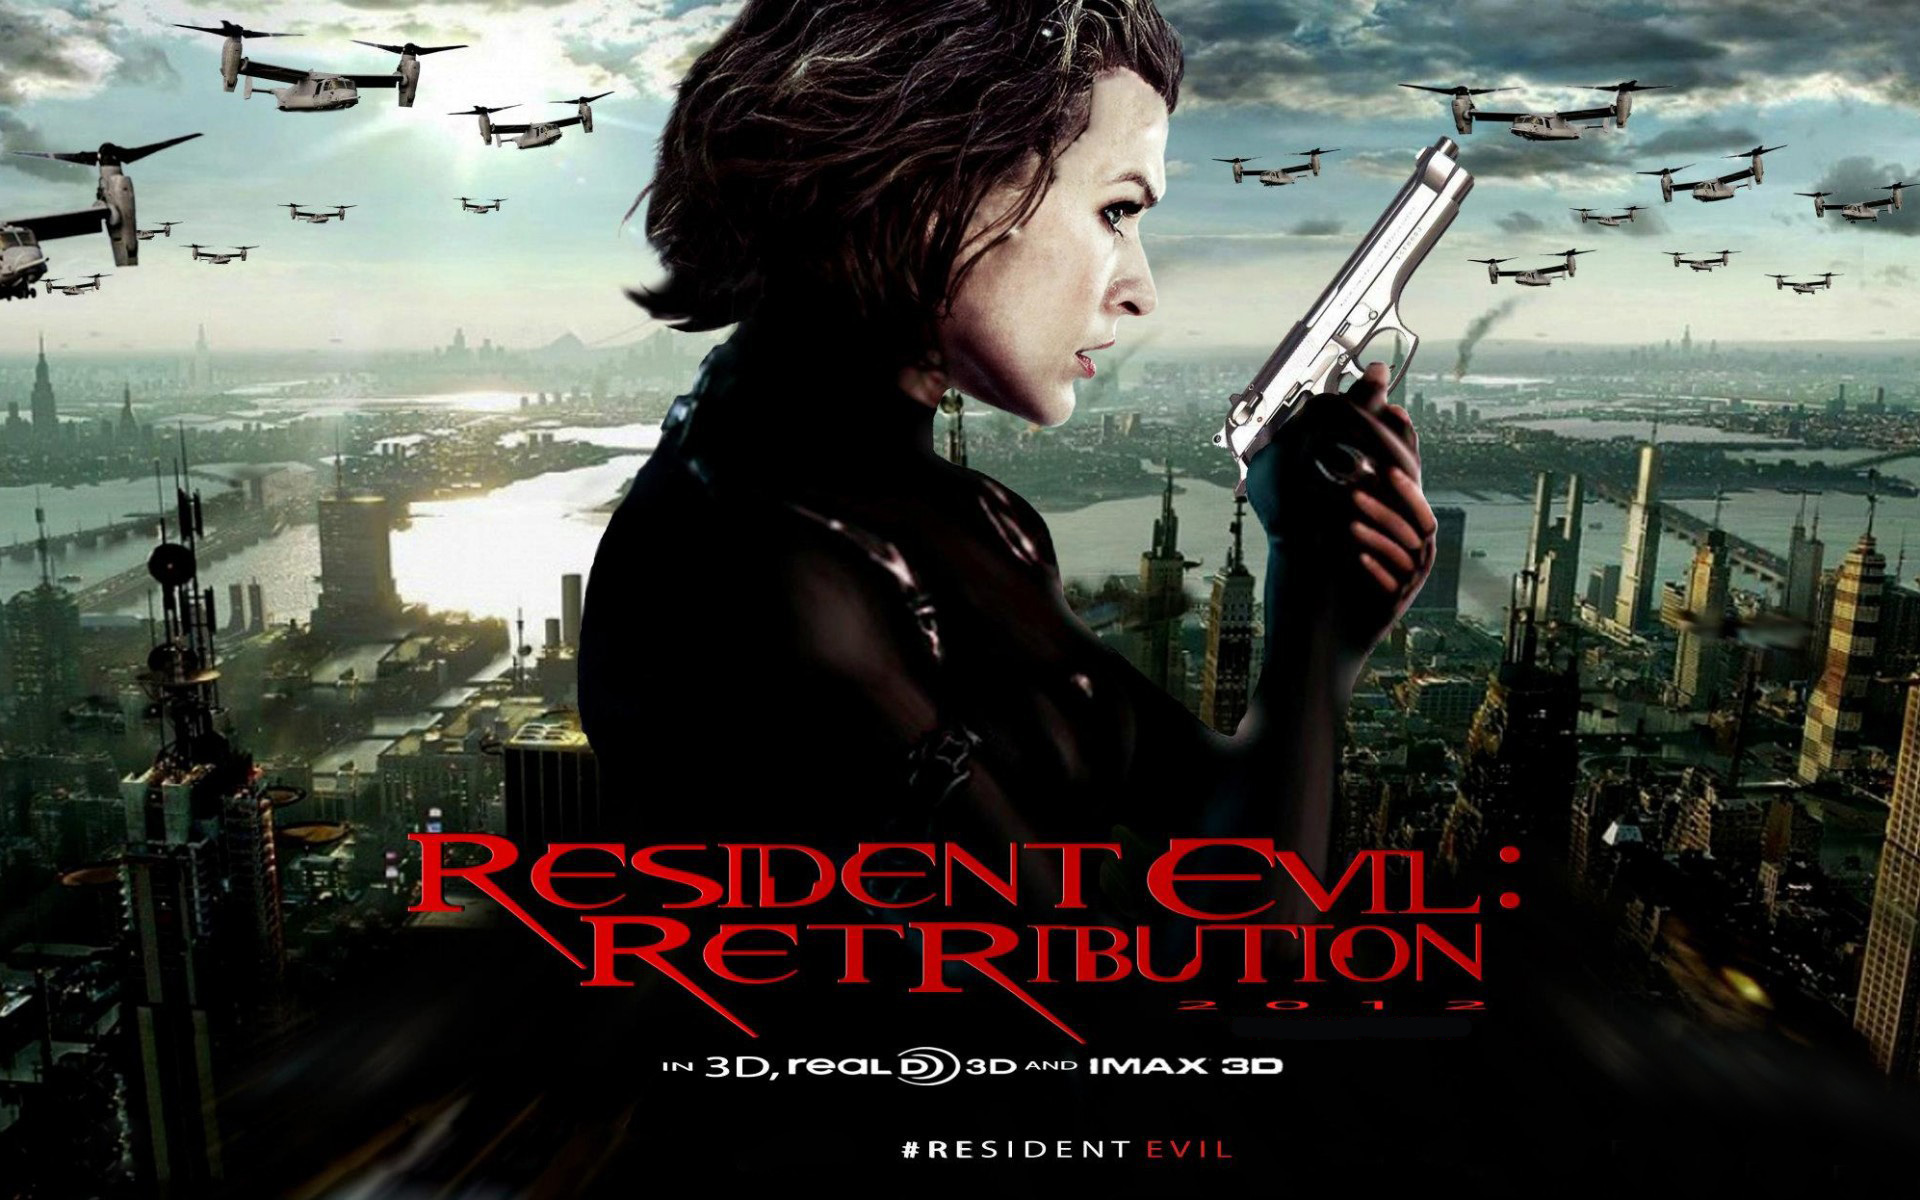 2012 Resident Evil 5 Retribution 2024.42 Kb